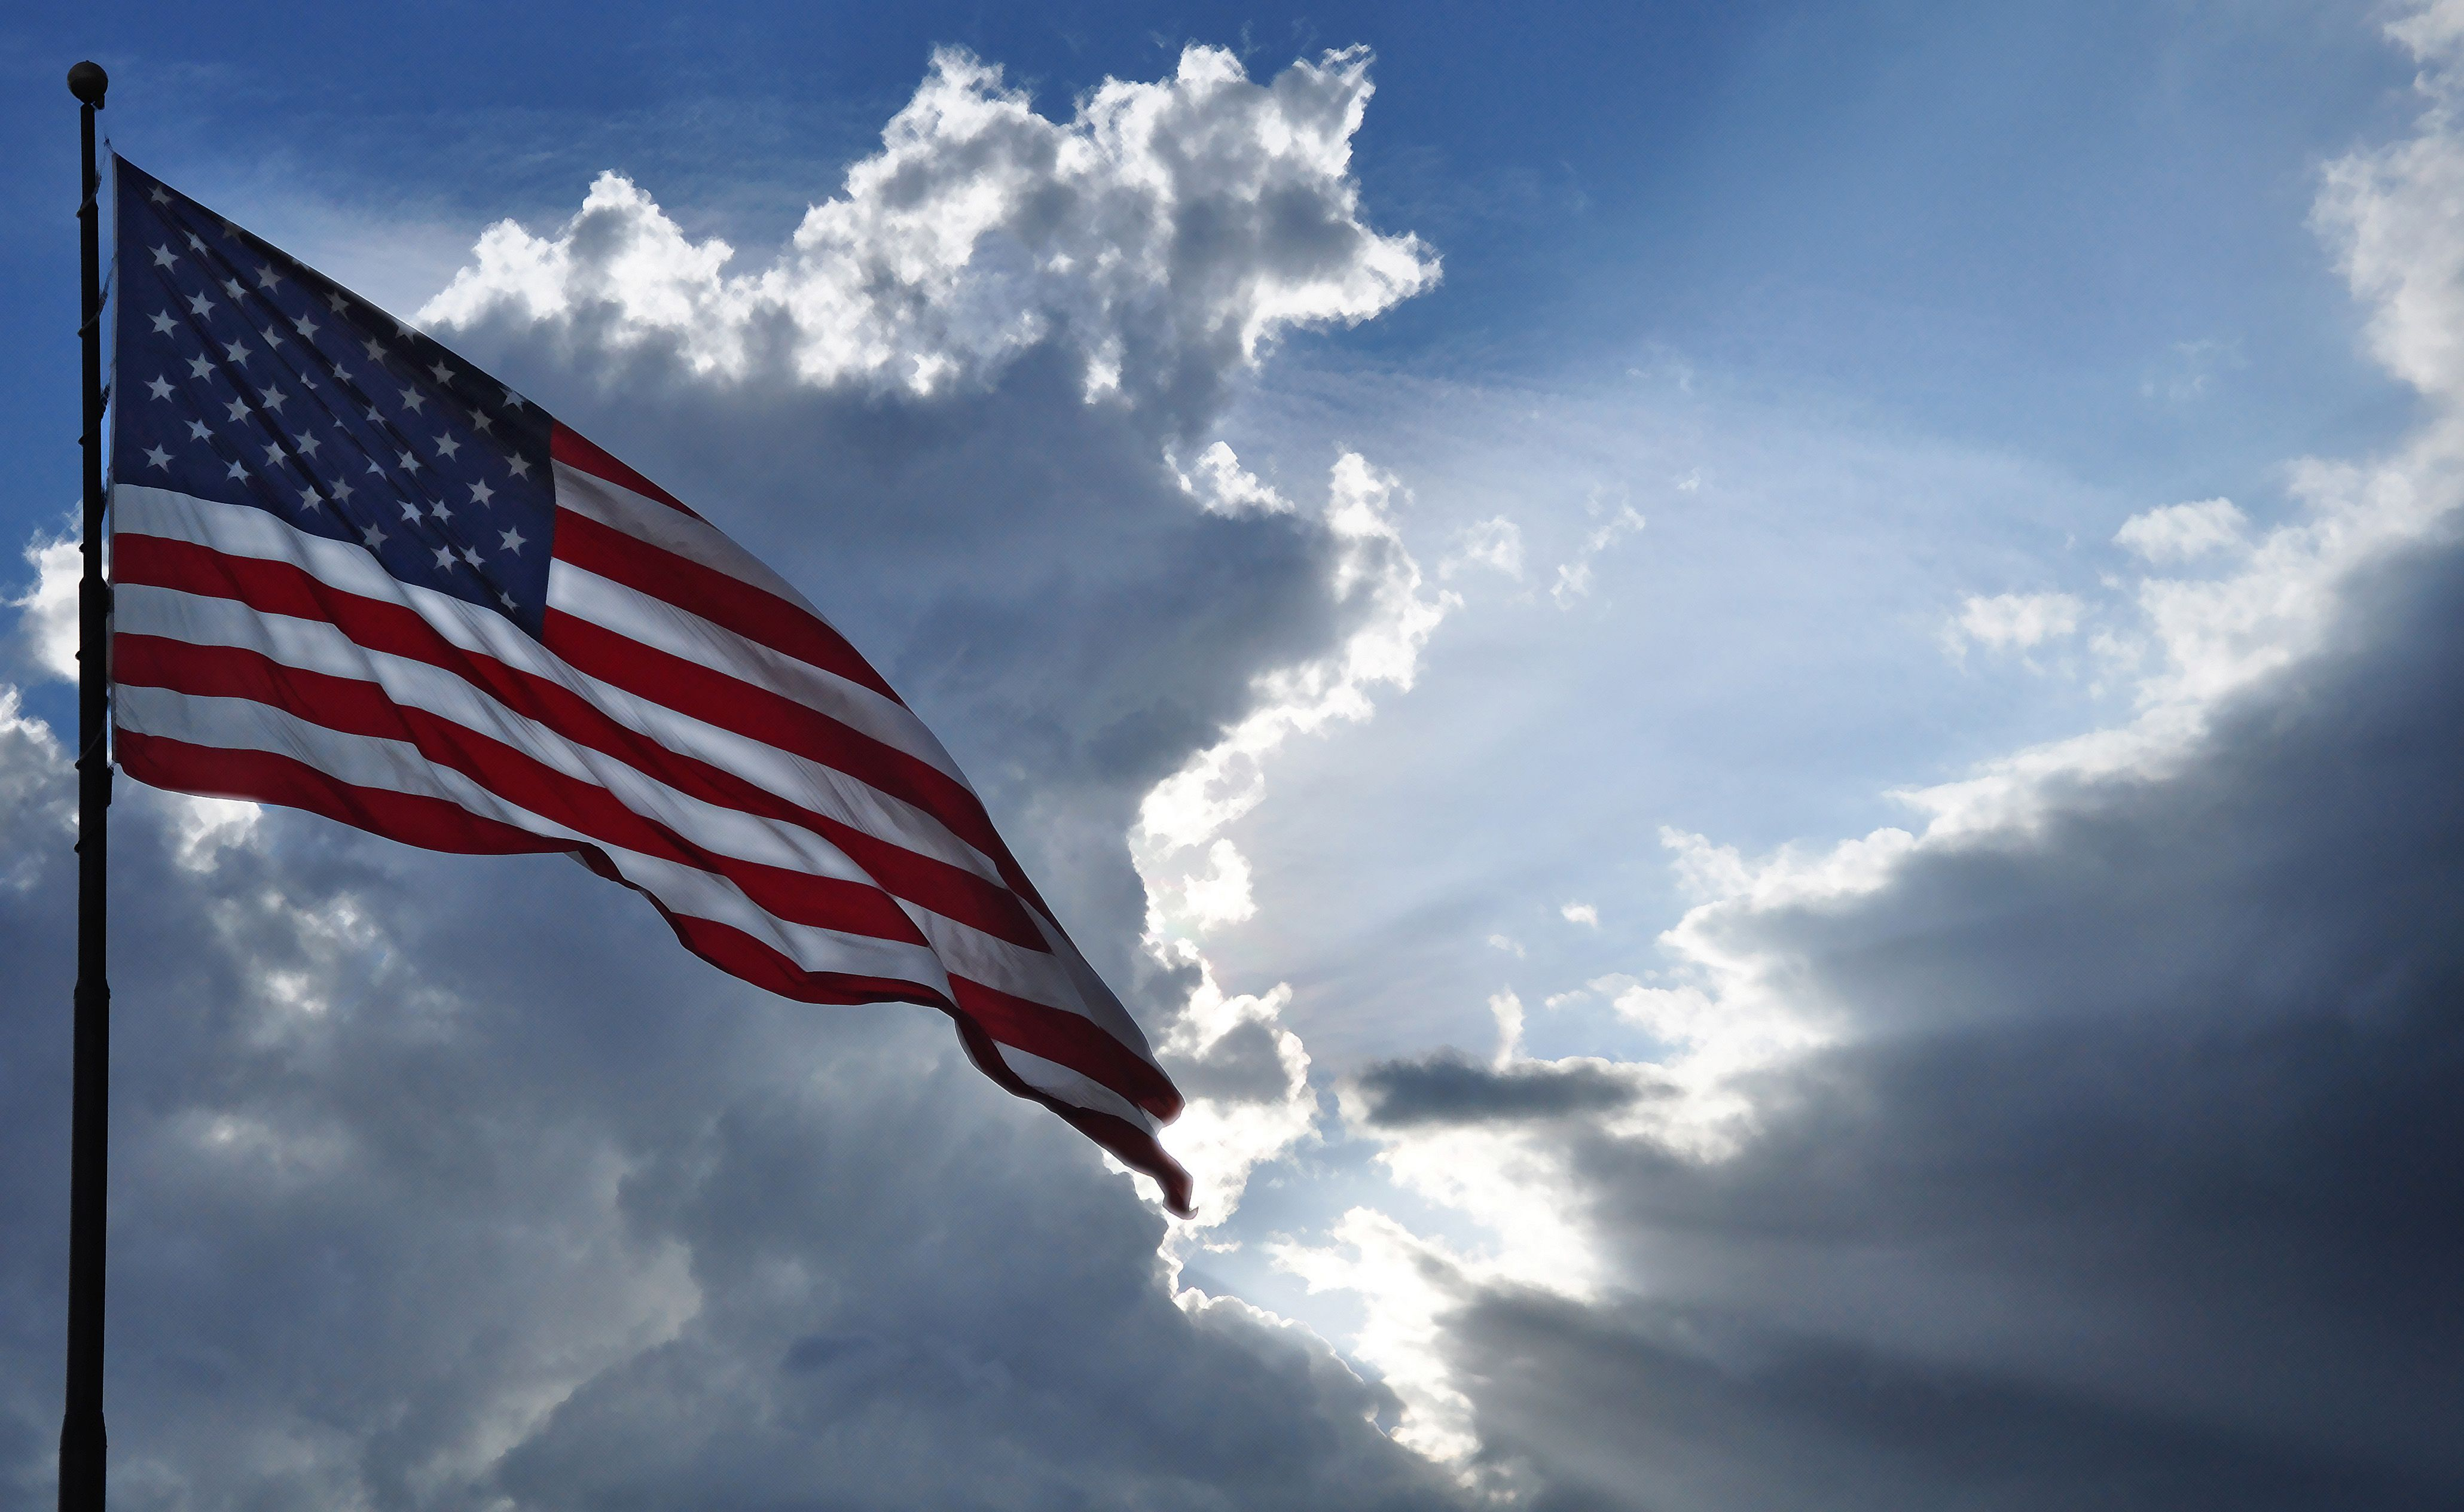 Beautiful Cloudy Evening Flag Flying Norman Oklahoma Wonders Of The World Nature Mother Nature